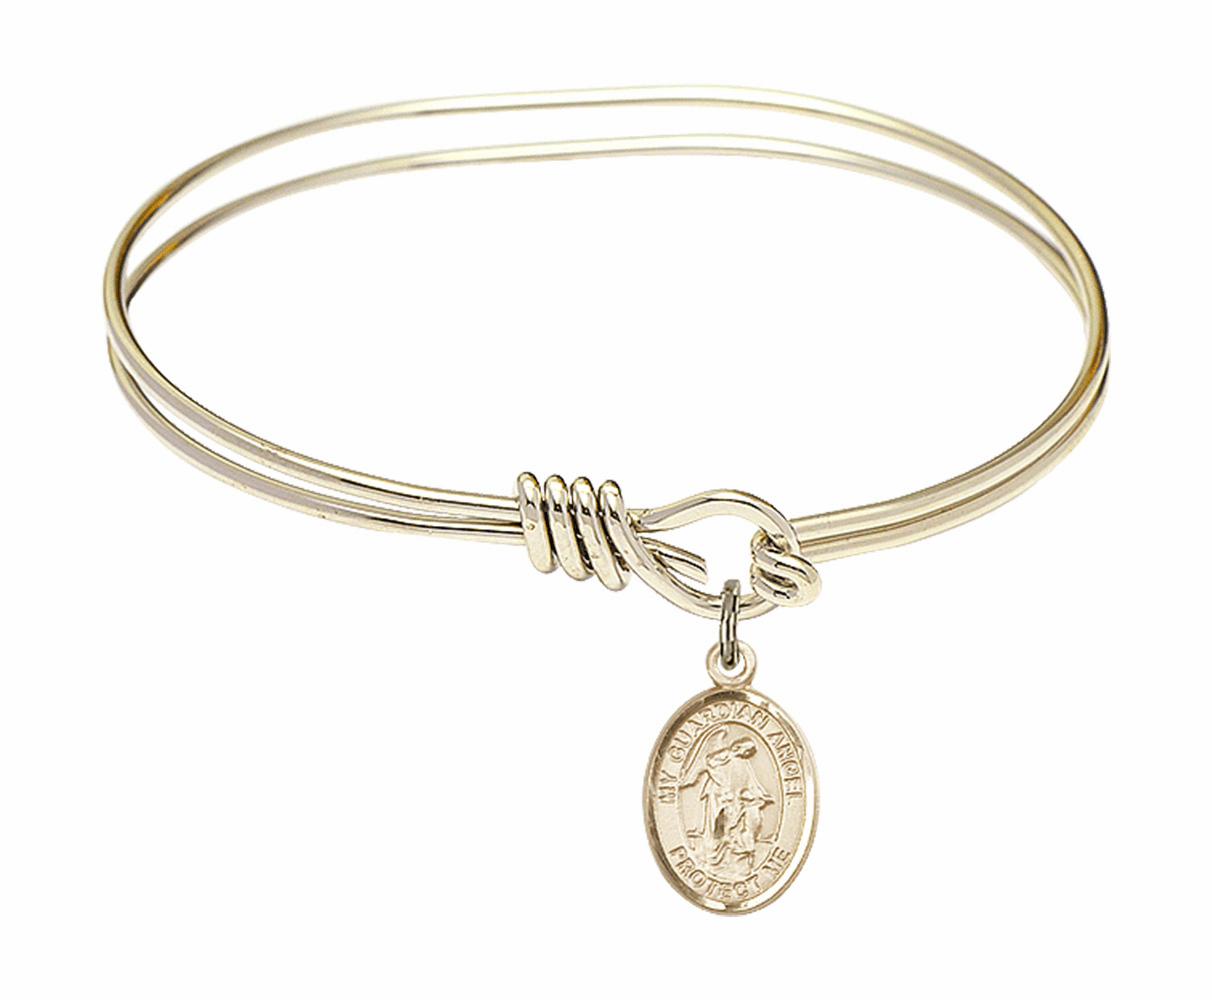 Round Loop Guardian Angel Bangle 14kt Gold-filled Charm Bracelet by Bliss